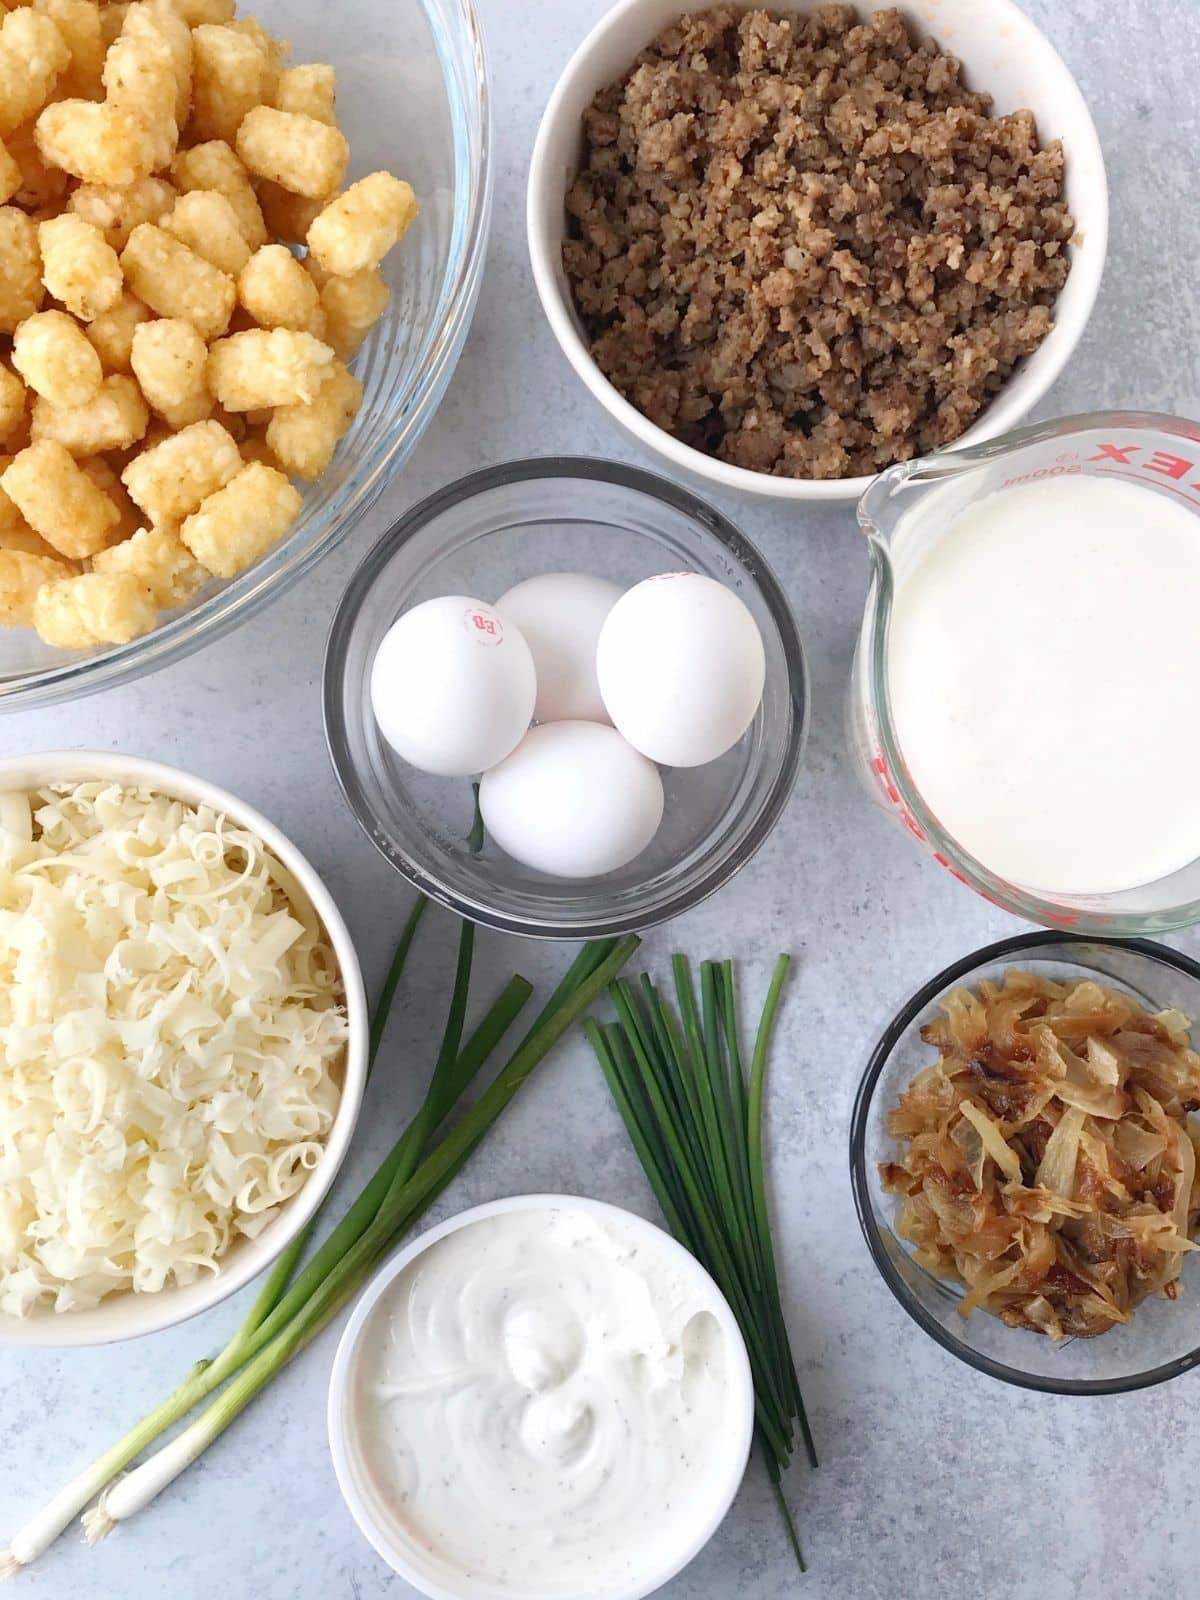 array of ingredients - tater tots, sausage, onions, eggs, cheese, cream, dip, chives, and scallions